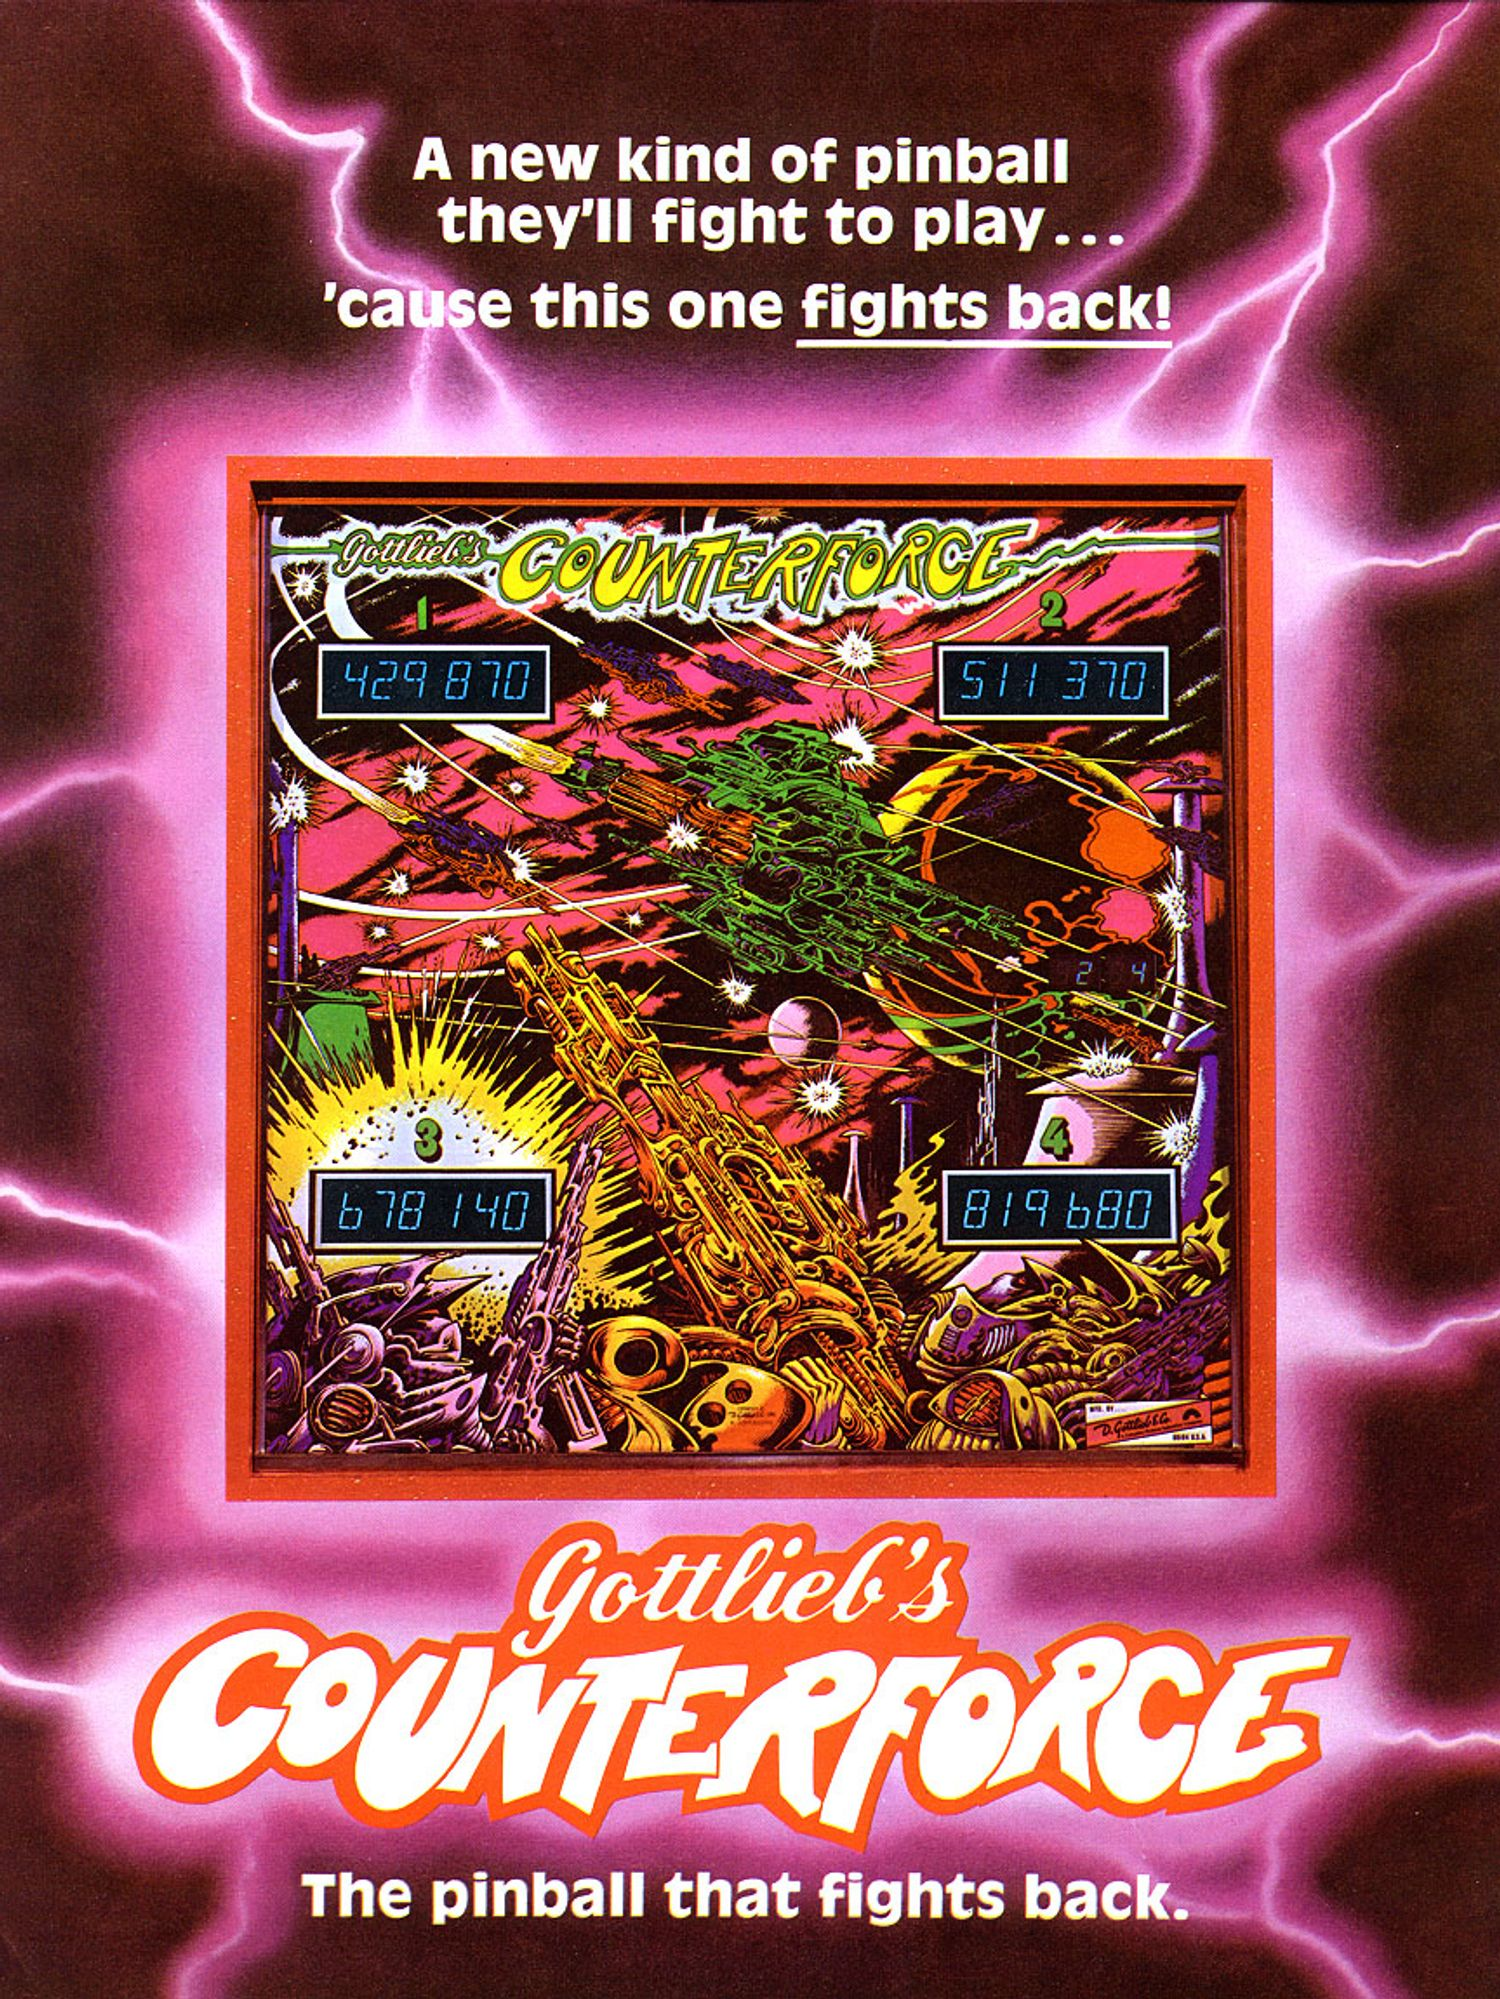 Counterforce Flyer front